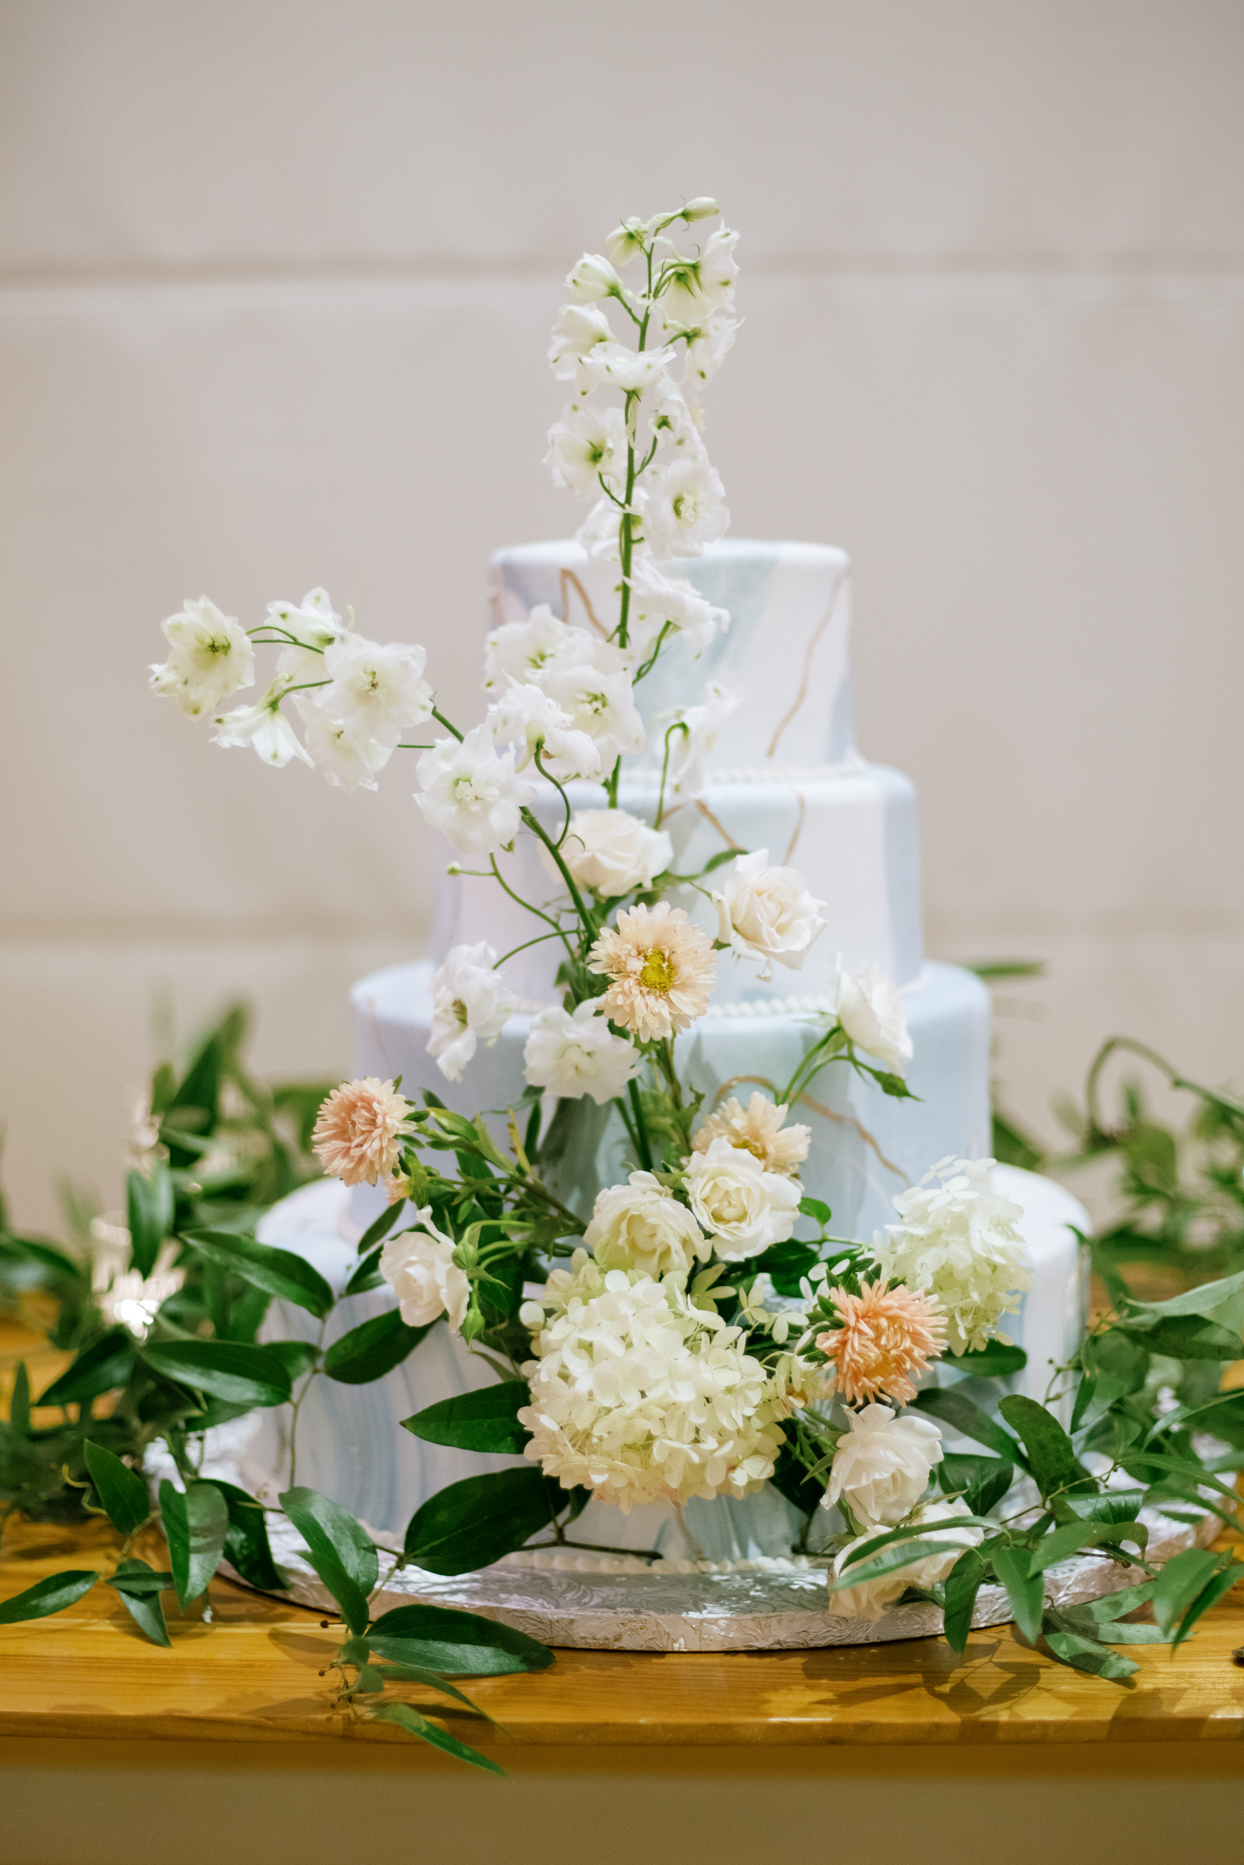 elegant blue and white wedding cake with floral decorations